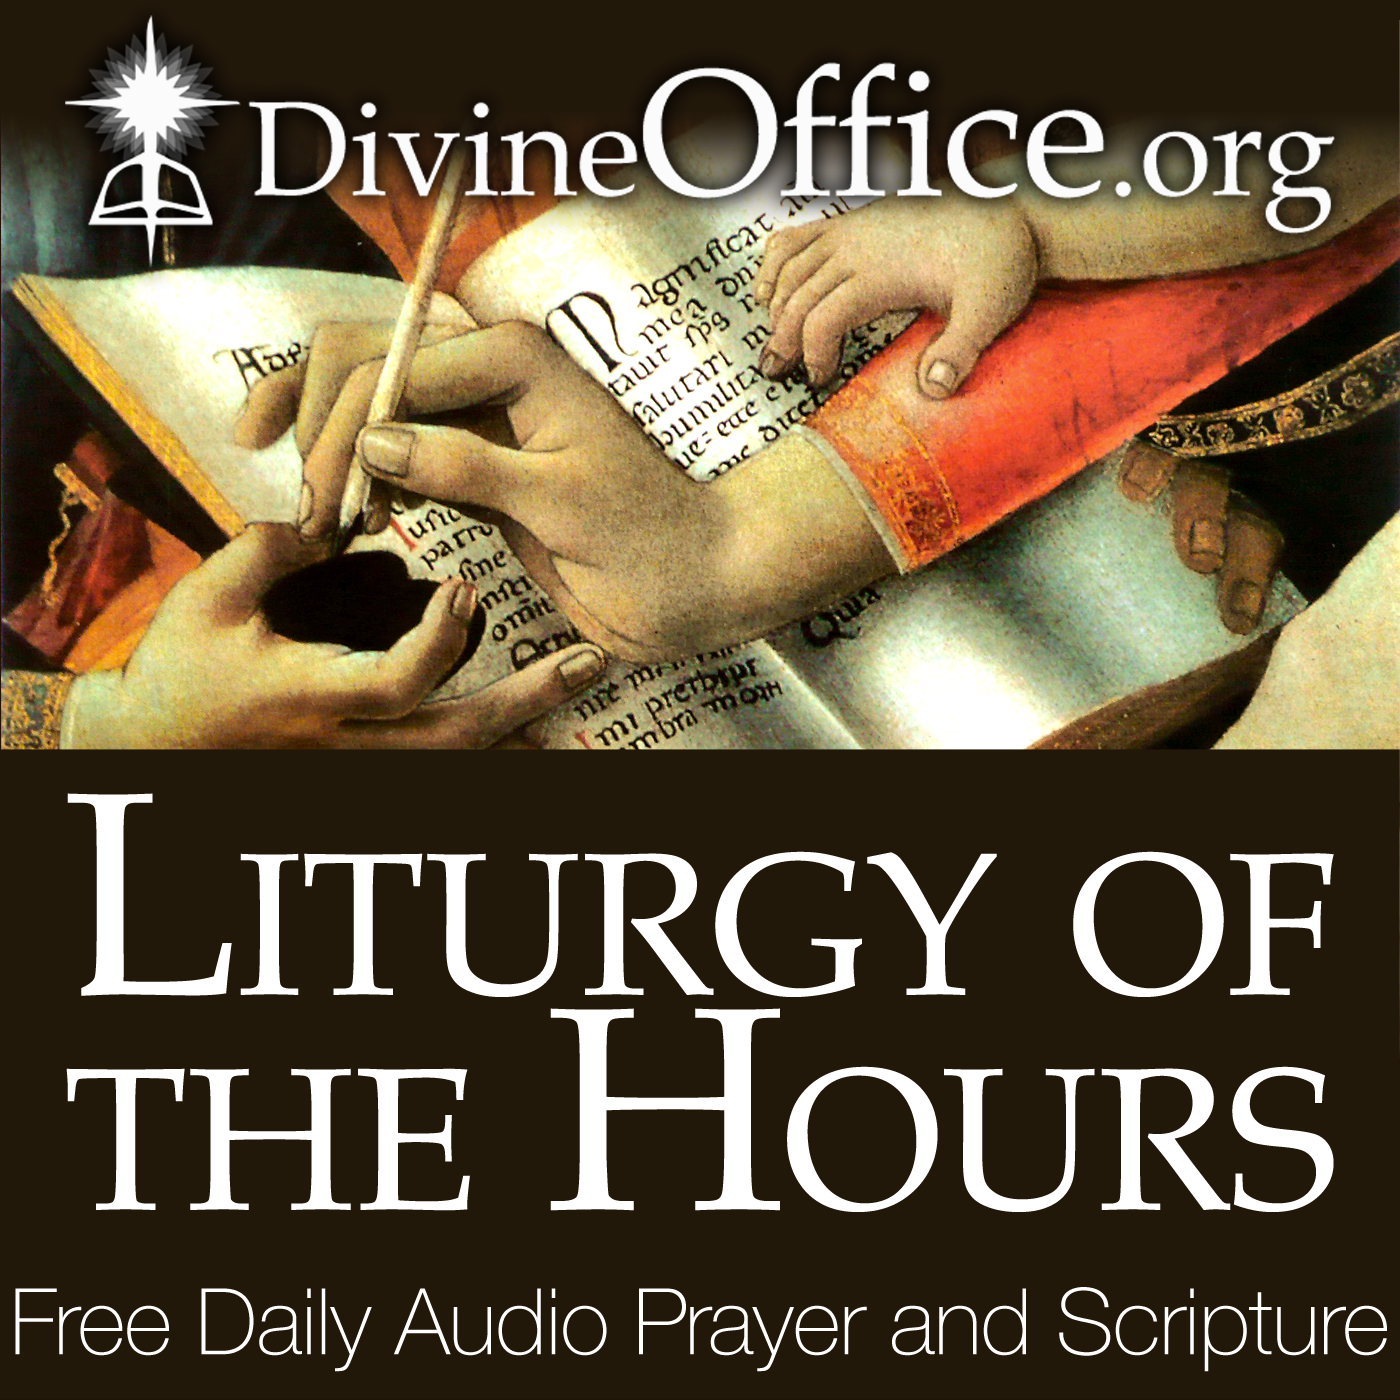 Divine Office - Liturgy of the Hours of the Roman Catholic Church show image